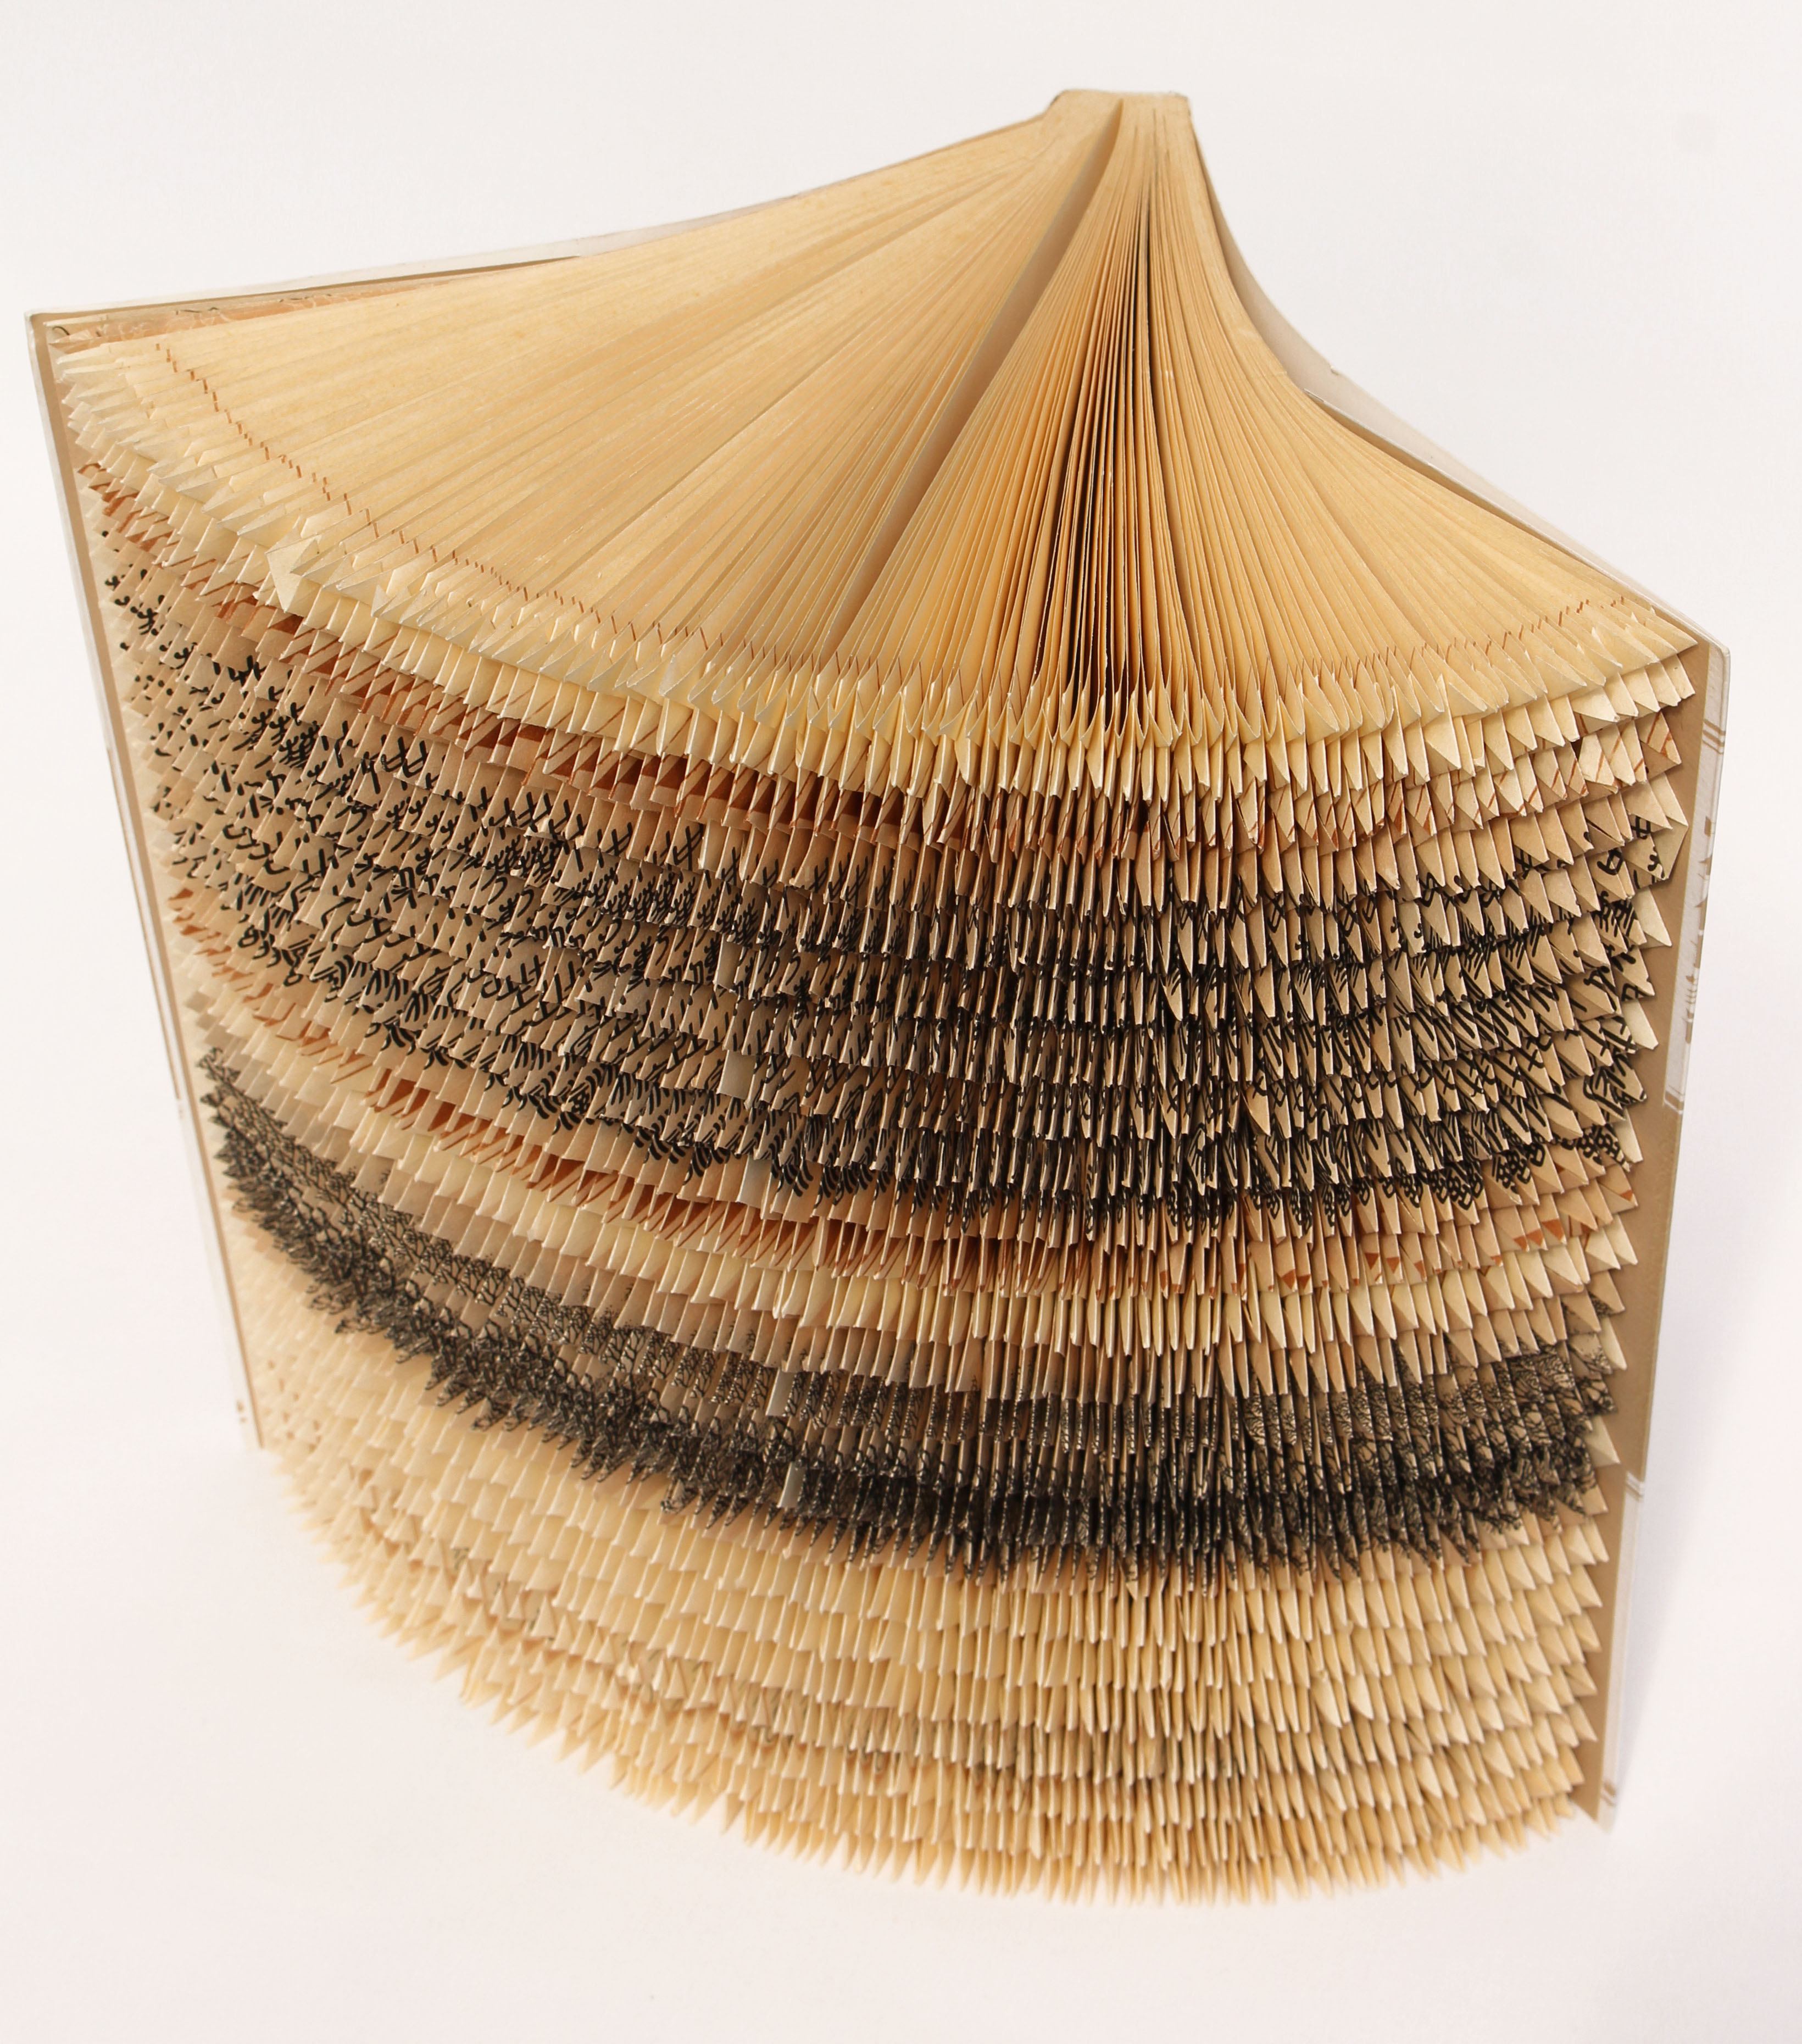 Japanese Fore-edge Folded Book , Top View